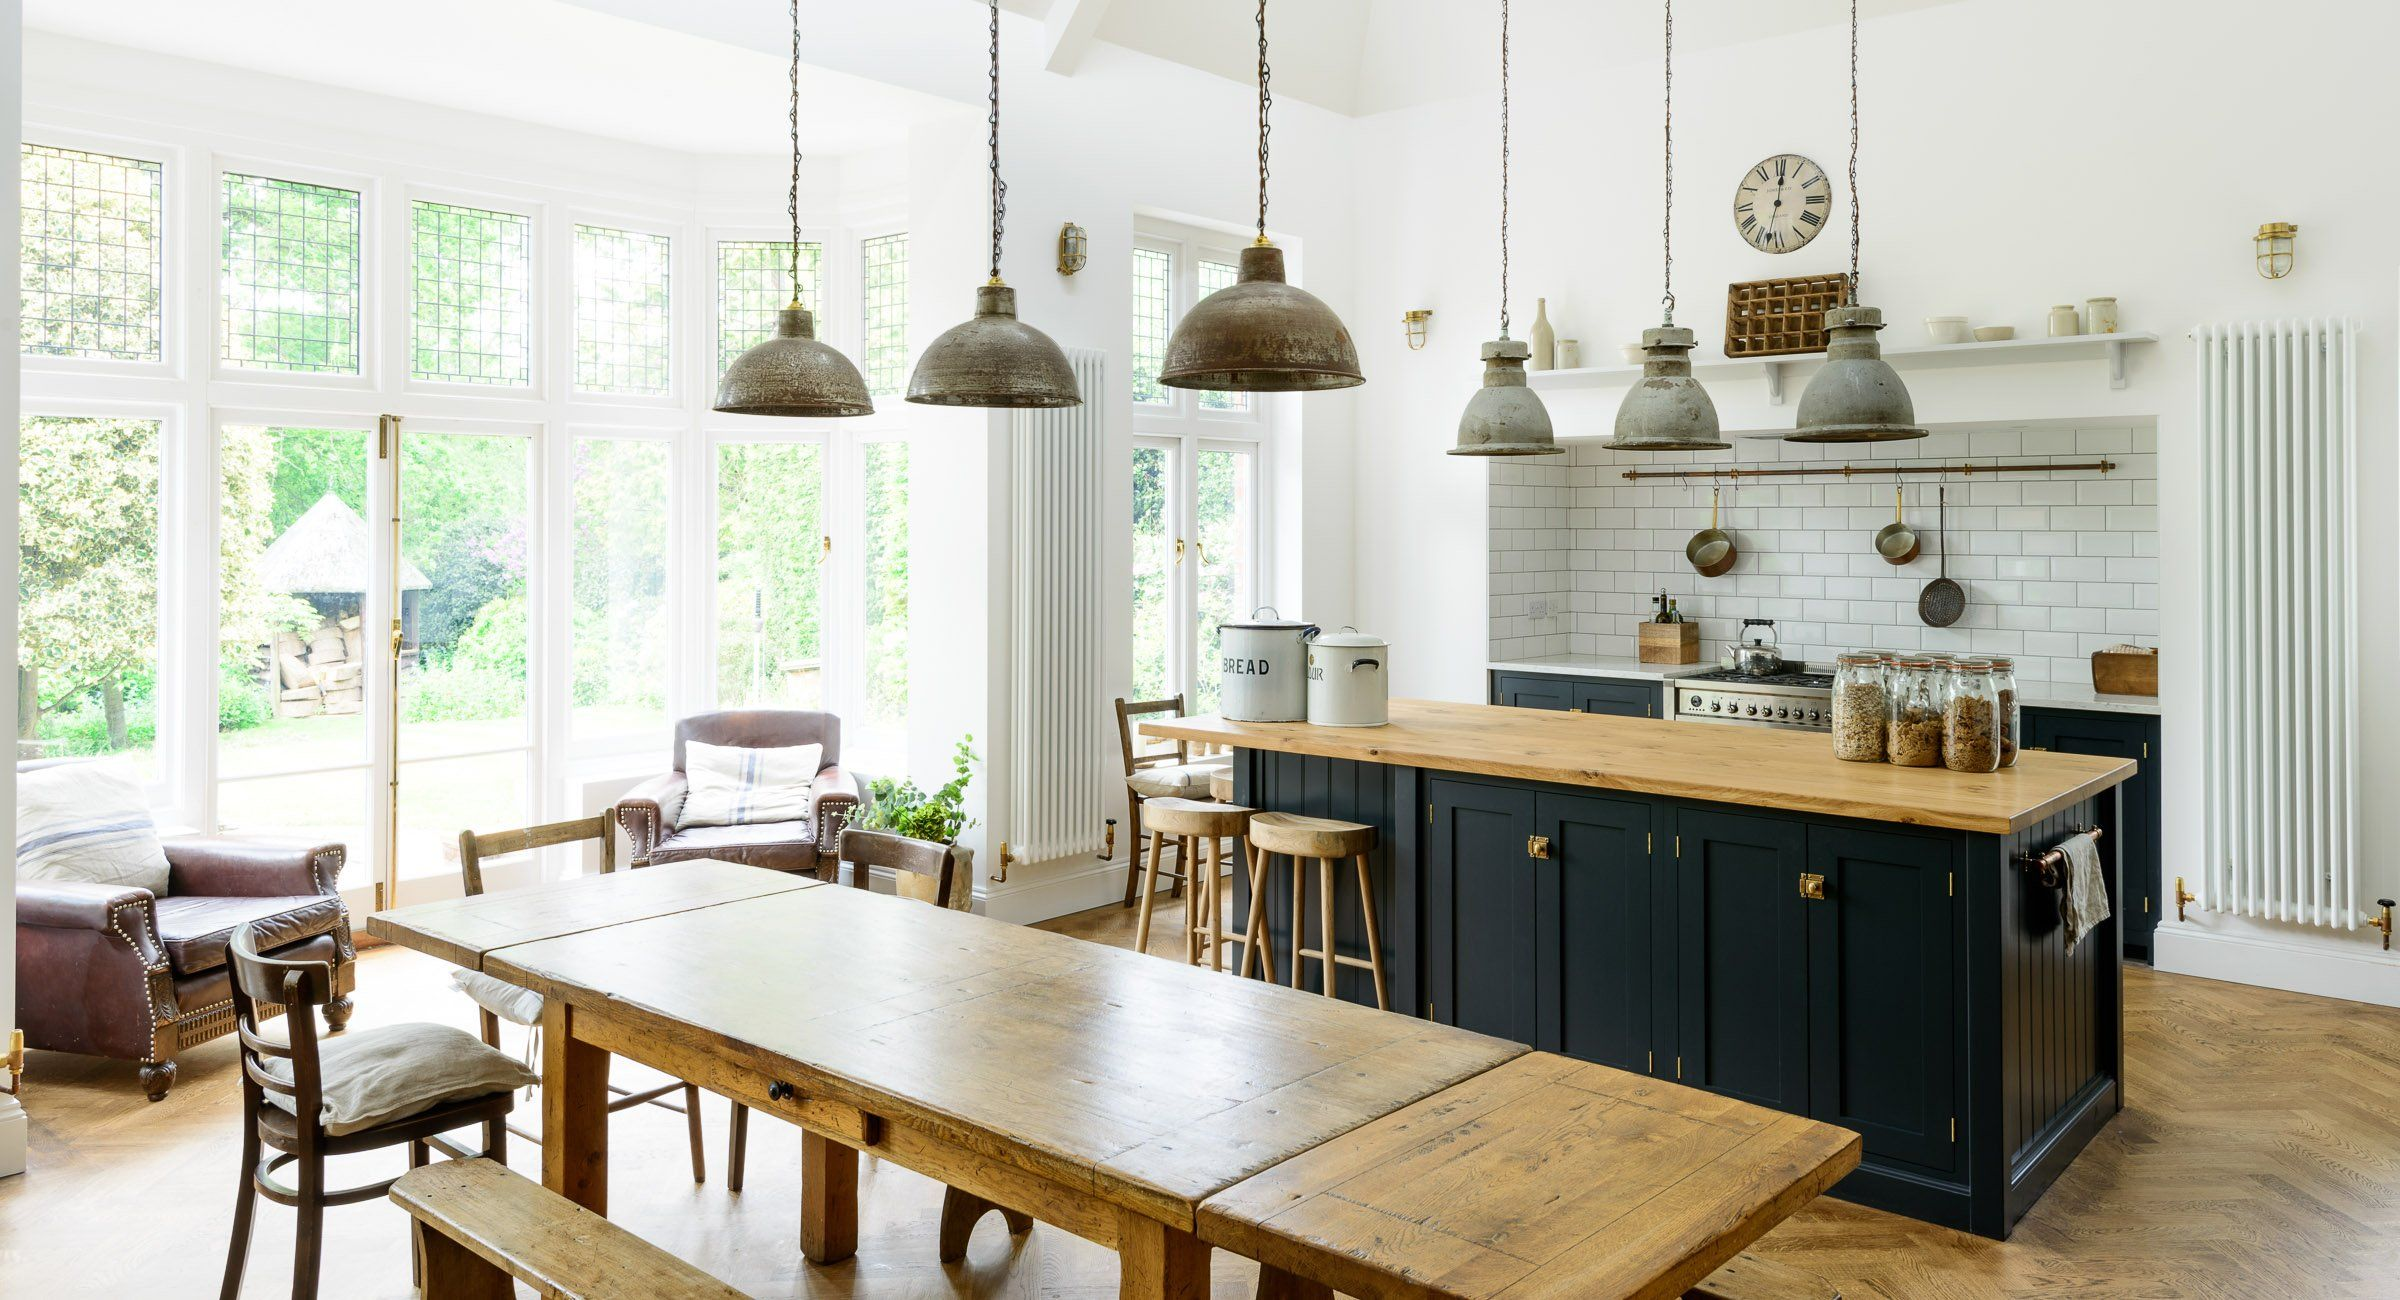 Arts And Crafts Kitchen Design Ideas Part - 26: Itu0027s A Big Call, Dream Kitchen, But The Arts And Crafts Kent Kitchen By  London-based DeVOL Kitchens Is The Stuff Of My Fantasies Made Real.